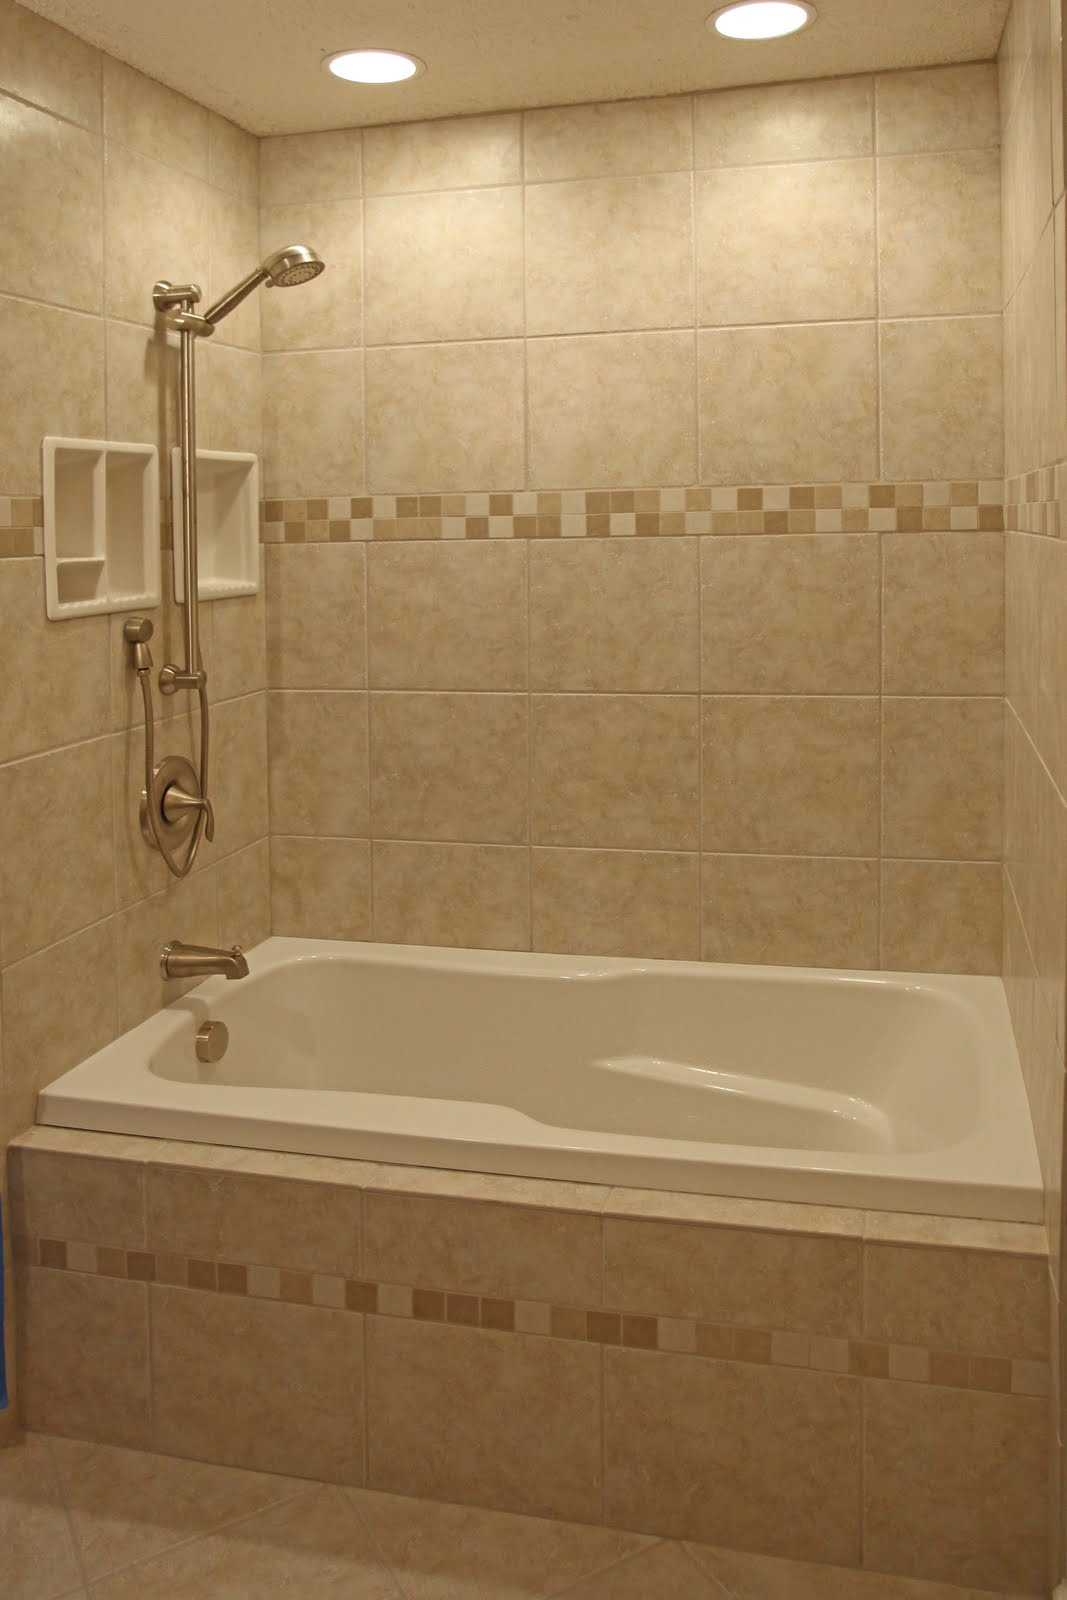 Bathroom remodeling design ideas tile shower niches for Bathroom ideas layout